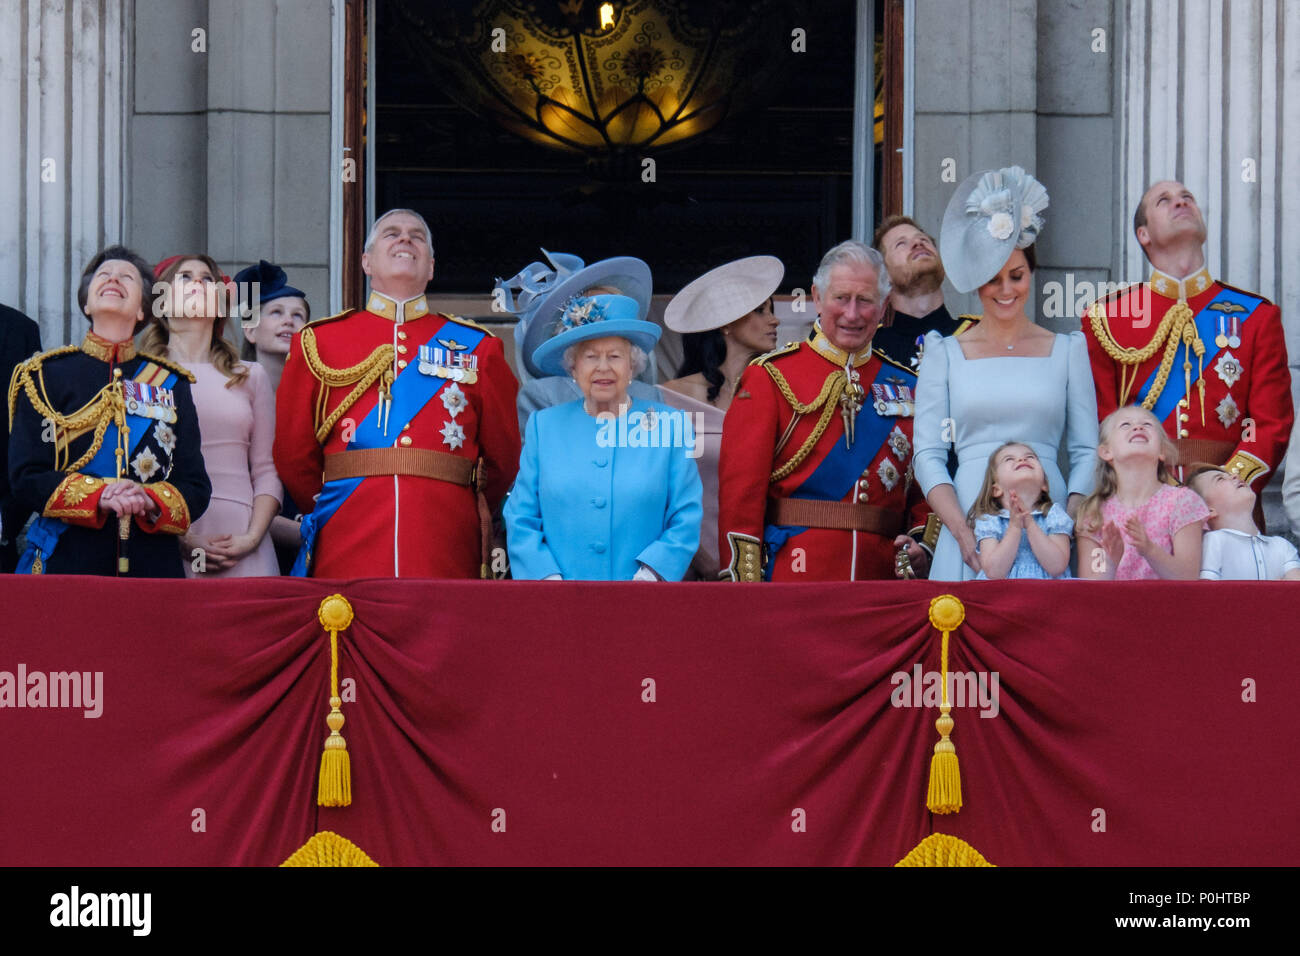 London, UK, 9 June 2018. The Royal Family gather on the palace balcony  at Trooping the Colour and Queens Birthday Parade on Saturday 9 June 2018 in Buckingham Palace , London. Pictured: Anne, The Princess Royal, Prince Andrew, The Duke of York, HRH Queen Elizabeth II, Prince Charles, Prince of Wales, Meghan Markle, Duchess of Sussex, Prince Harry, The Duke of Sussex, Kate, Duchess of Cambridge, Prince William, Duke of Cambridge, Princess Charlotte of Cambridge , Prince George of Cambridge. Picture by Julie Edwards. Credit: Julie Edwards/Alamy Live News Stock Photo